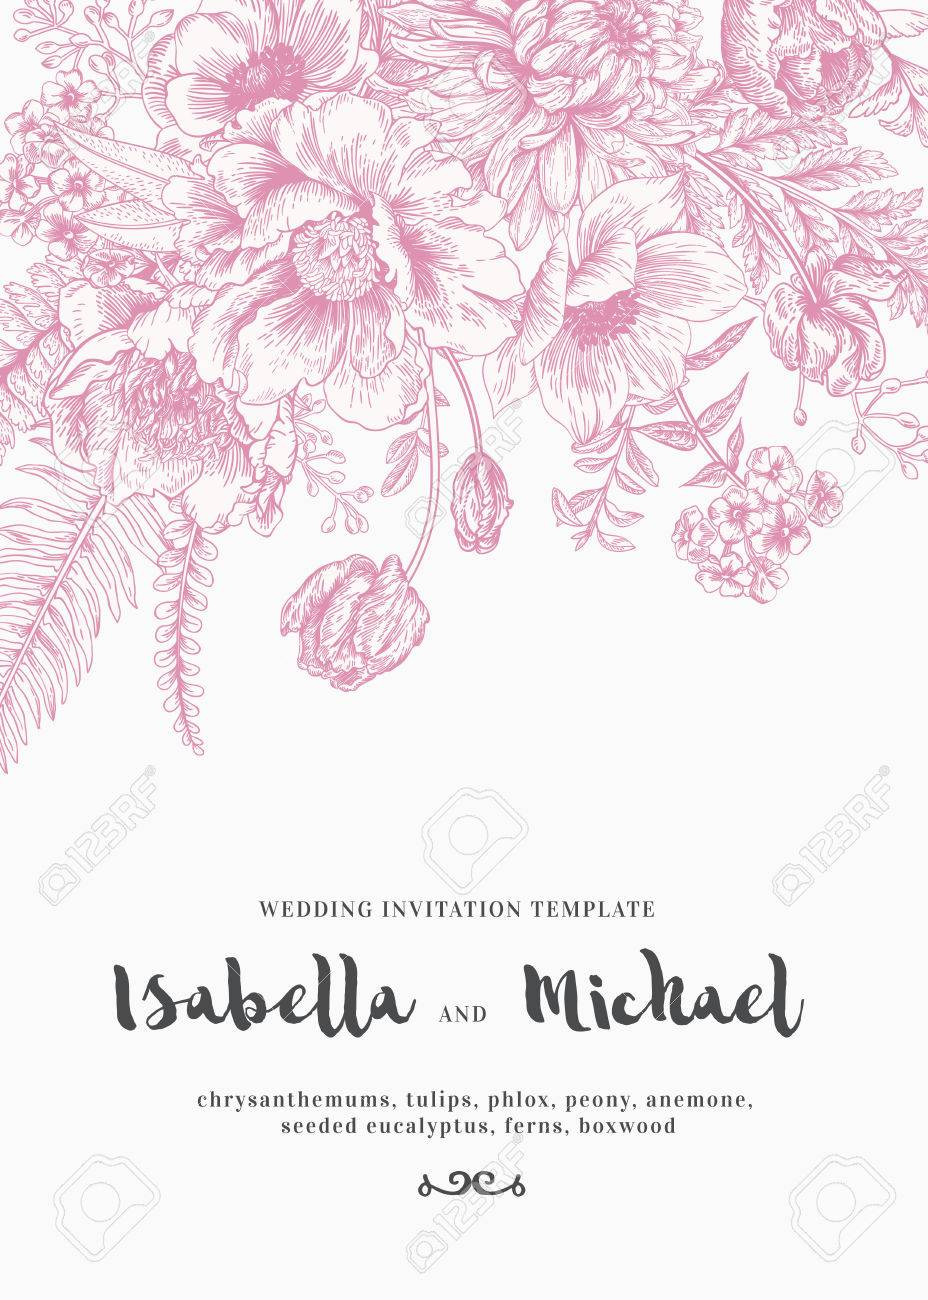 Elegant Wedding Invitations With Summer Flowers In Vintage Style ...